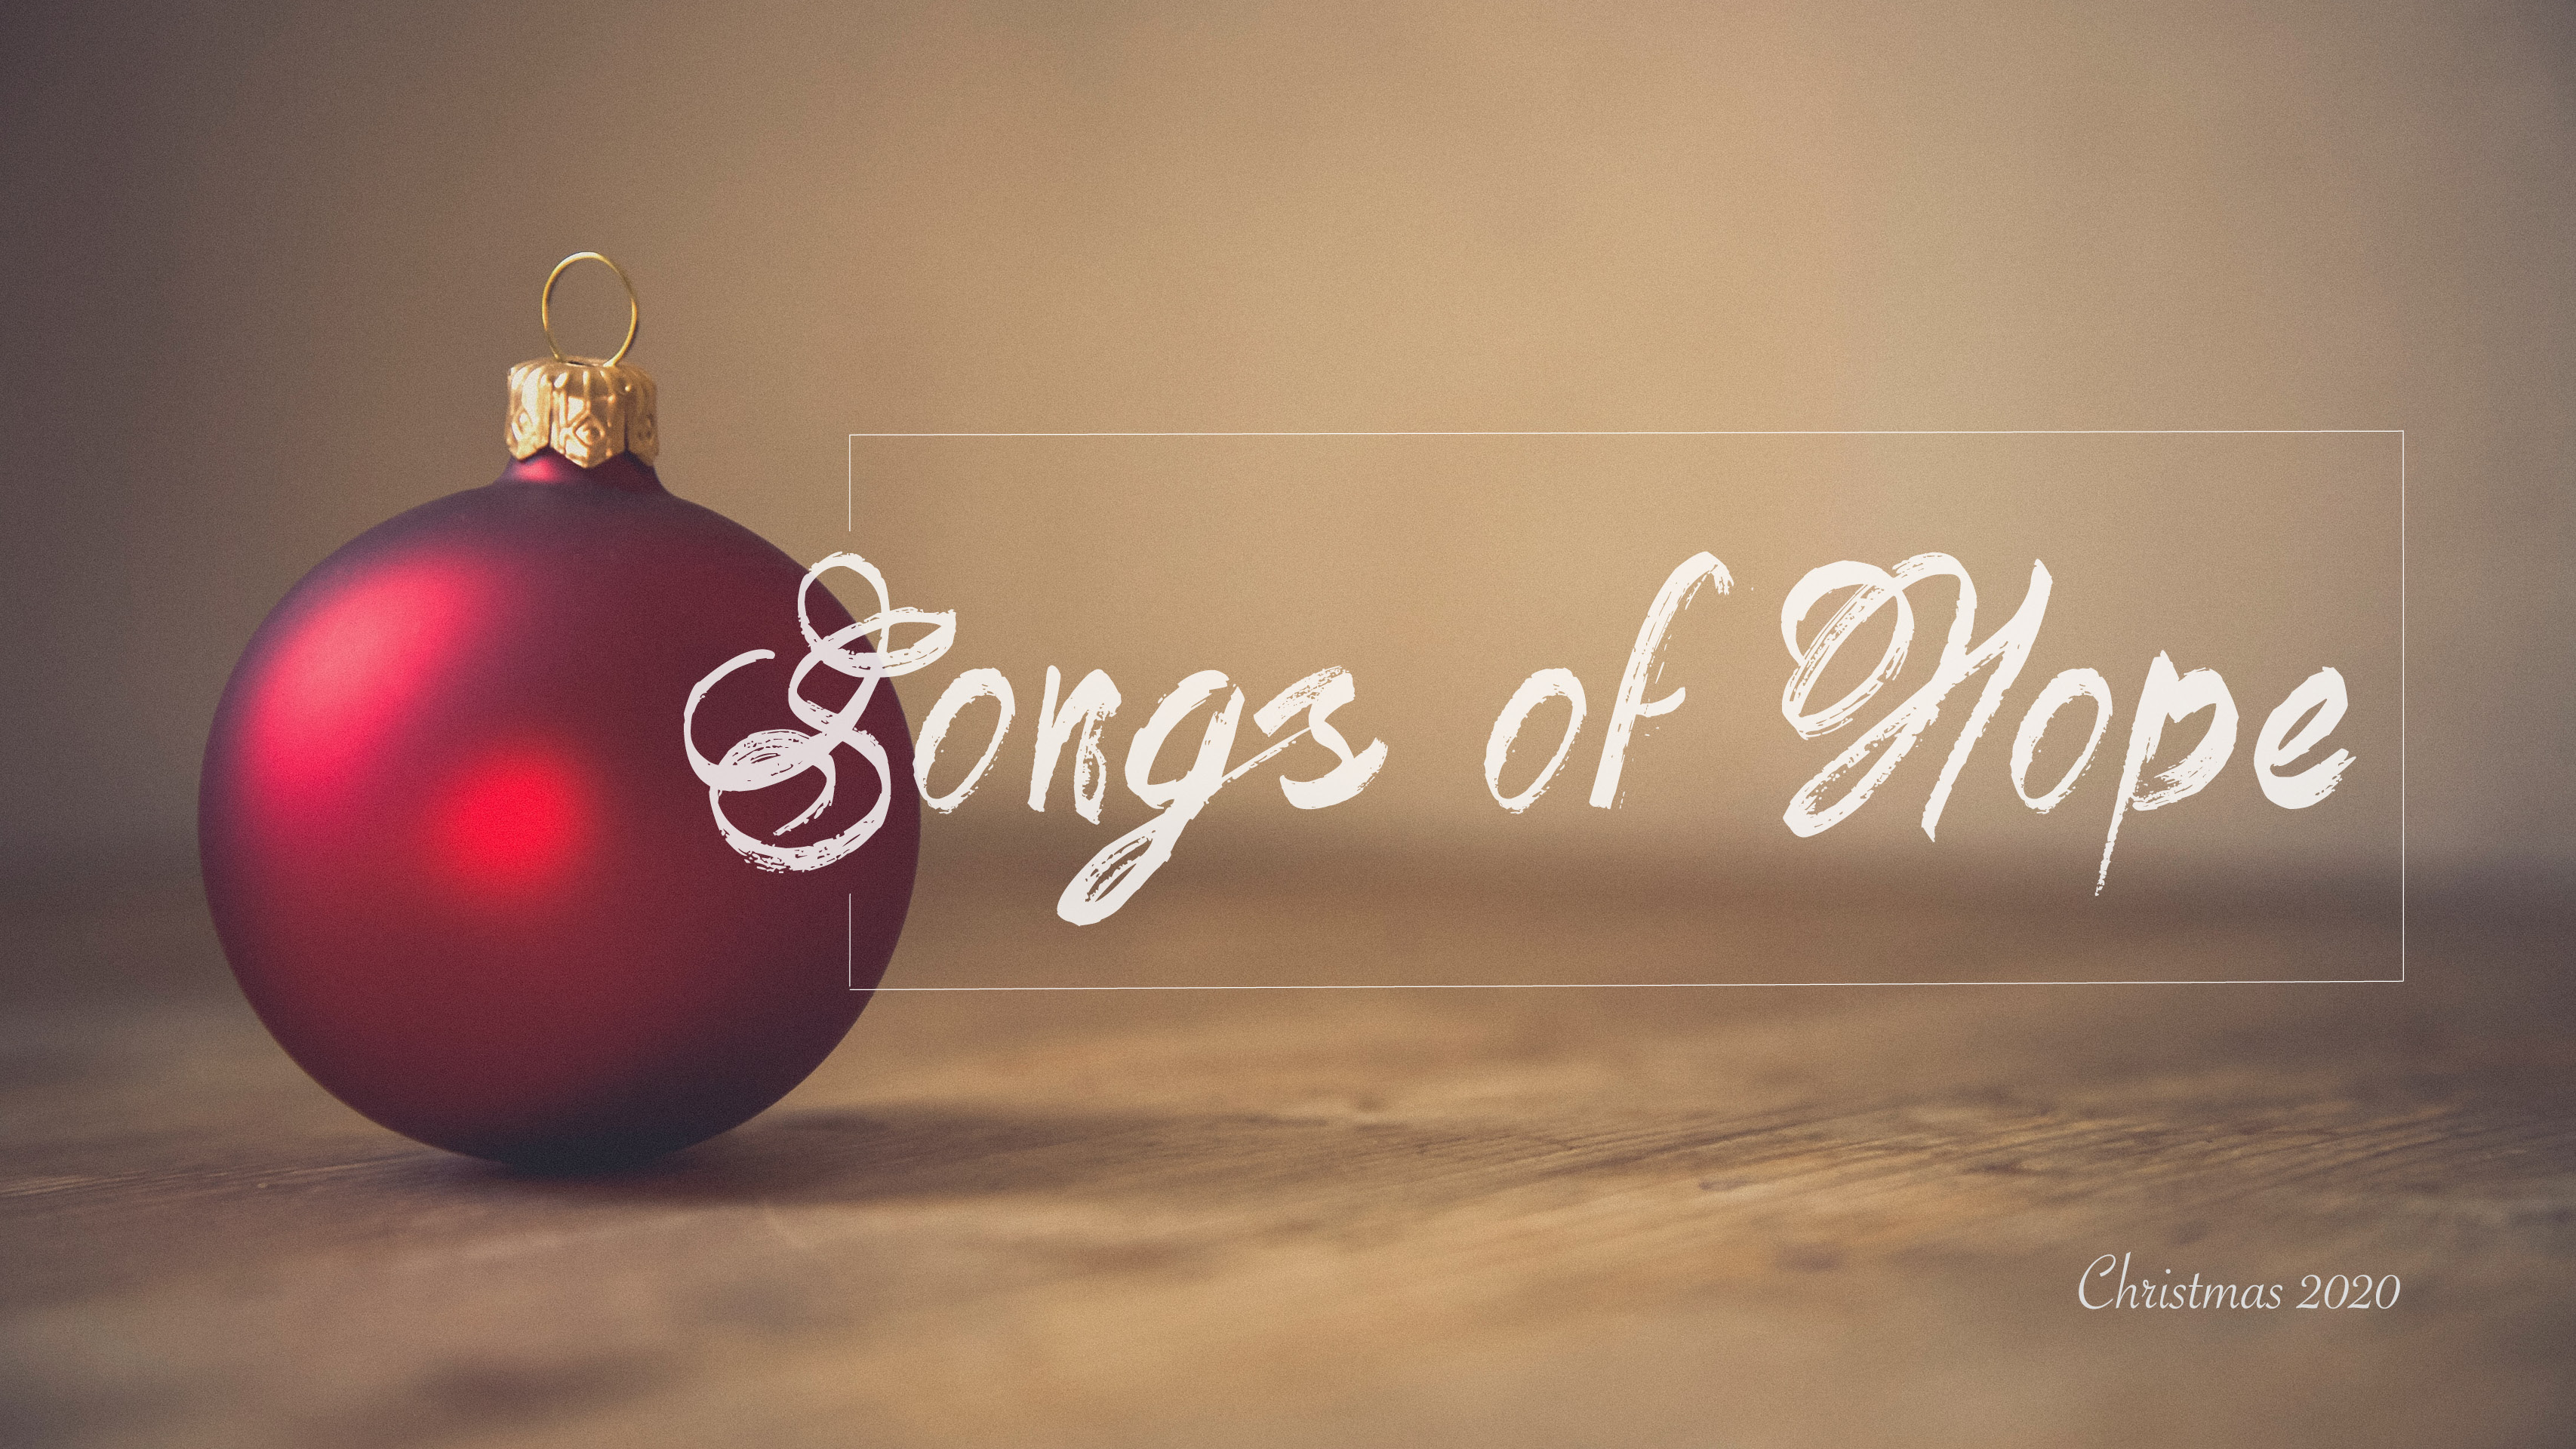 Songs of Hope - Song of Glory (Christmas Eve)